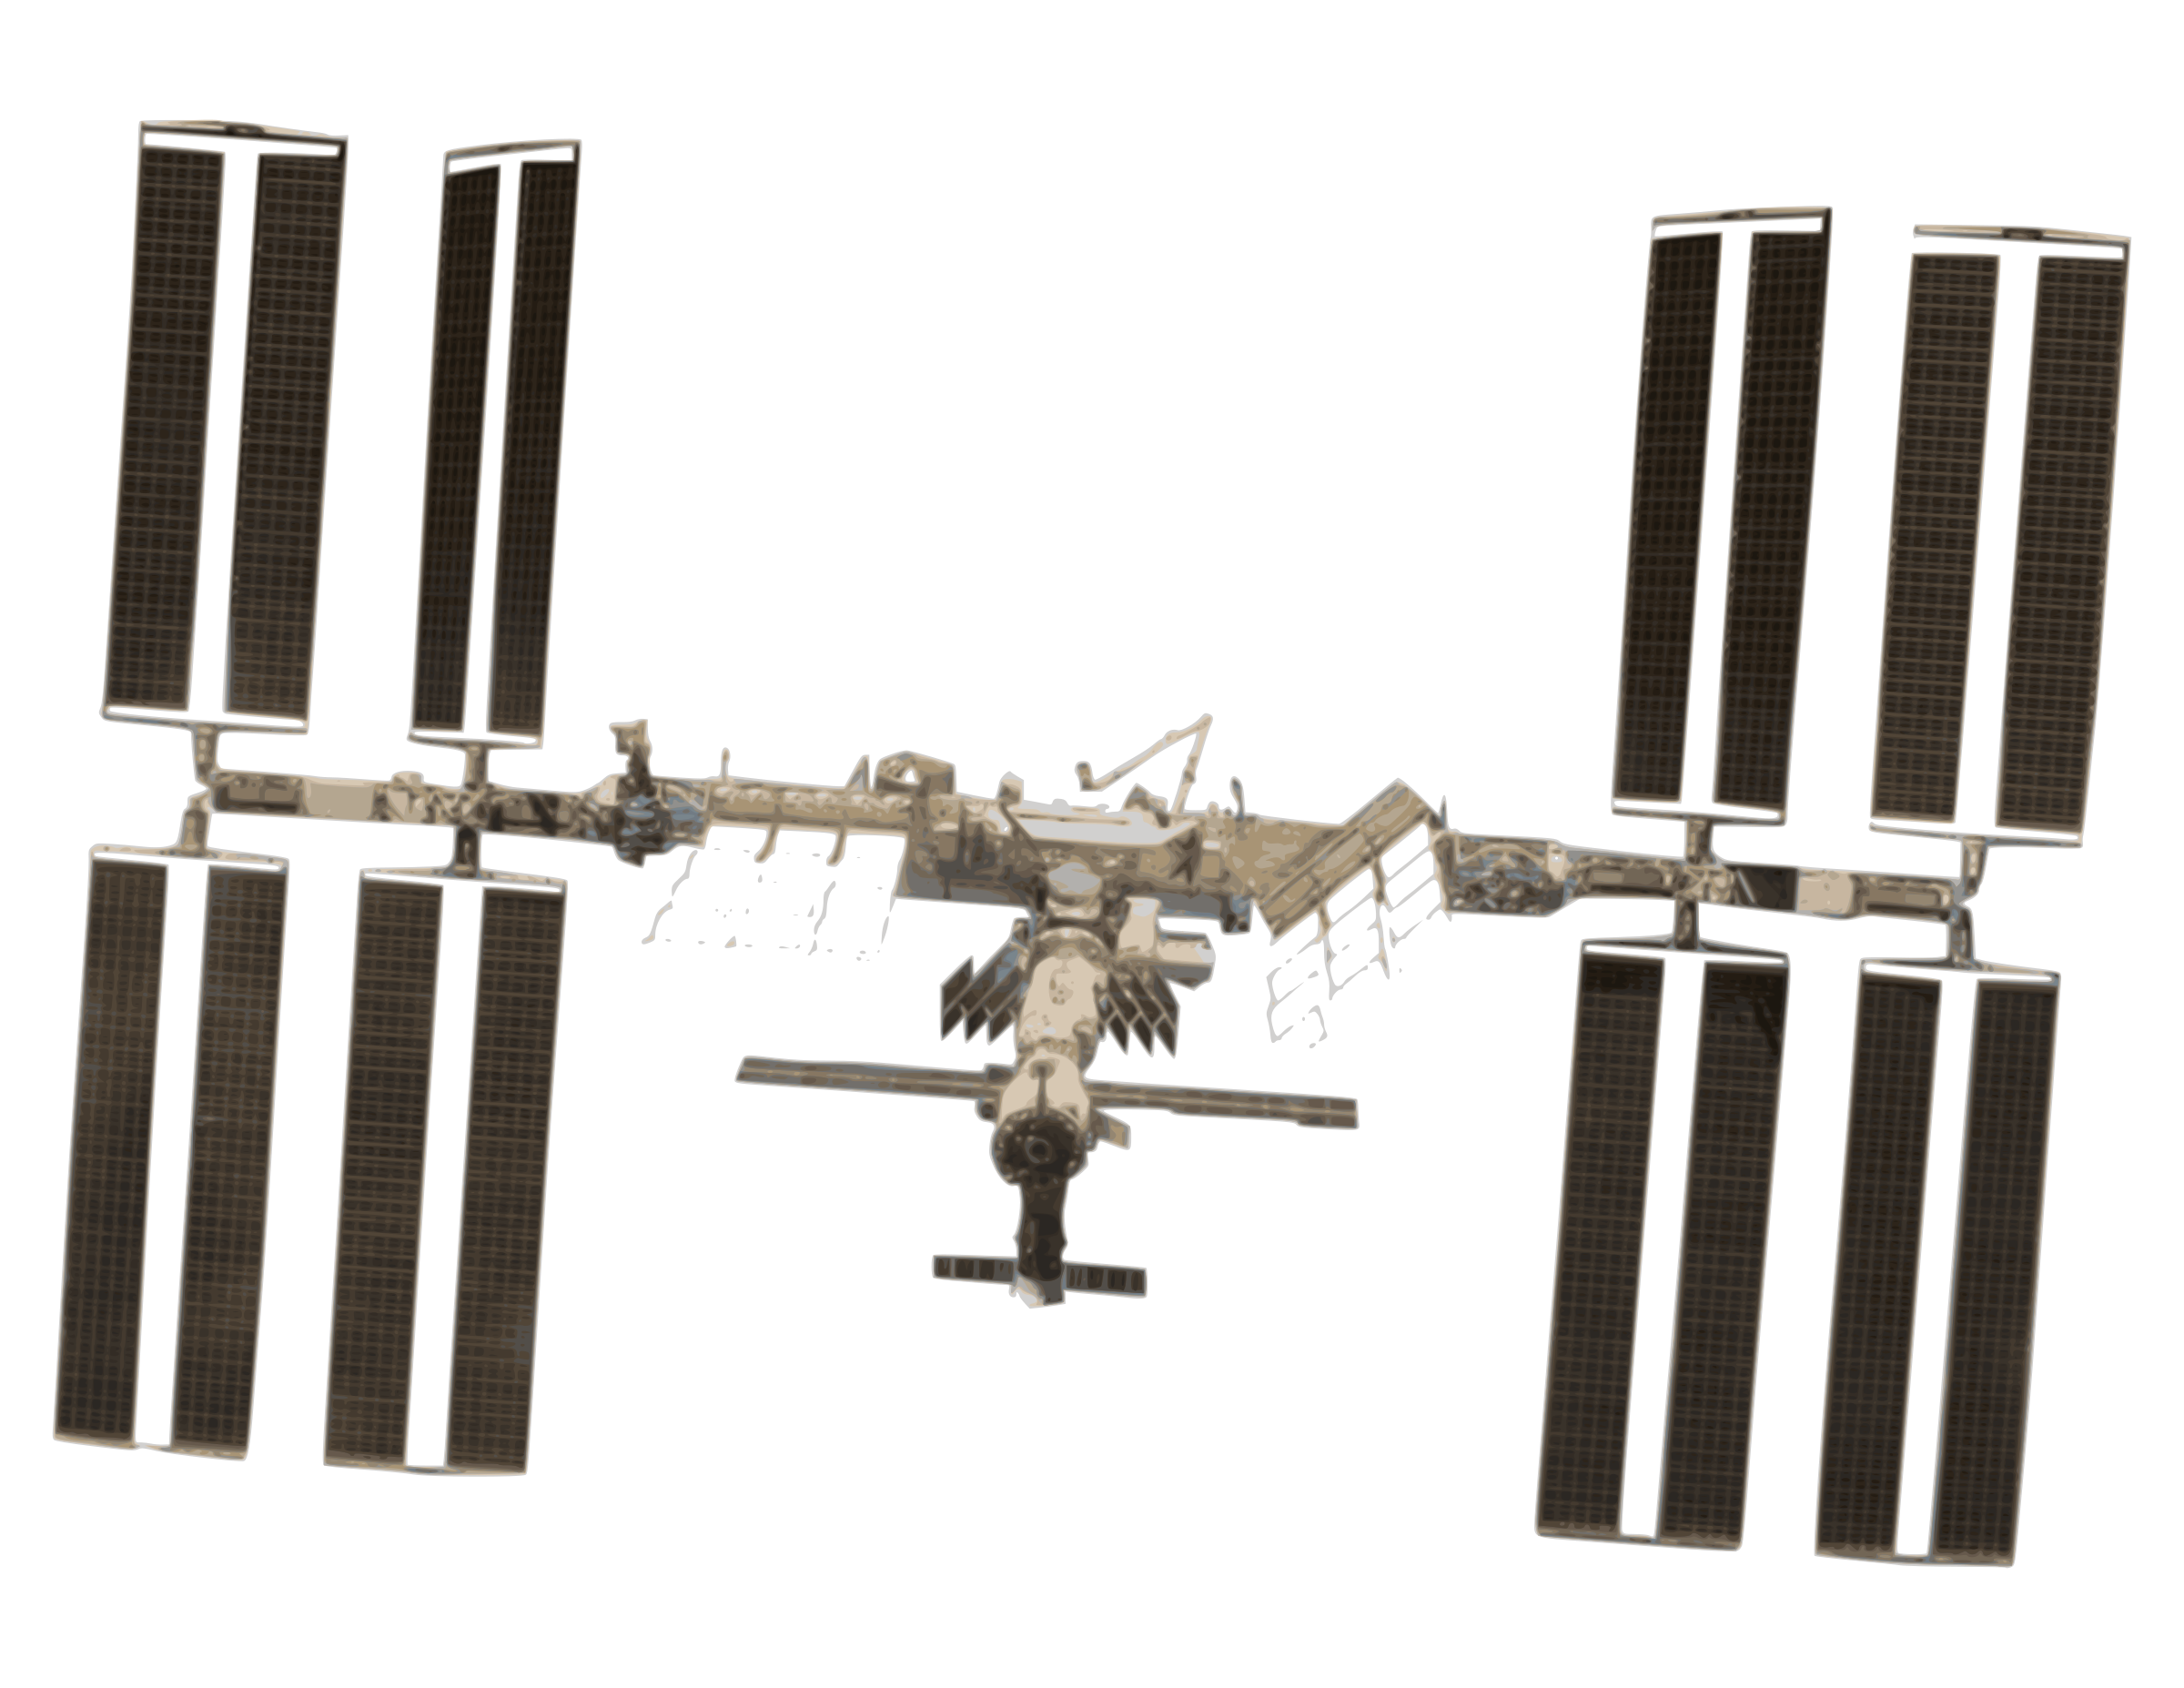 International Space Station clipart #4, Download drawings